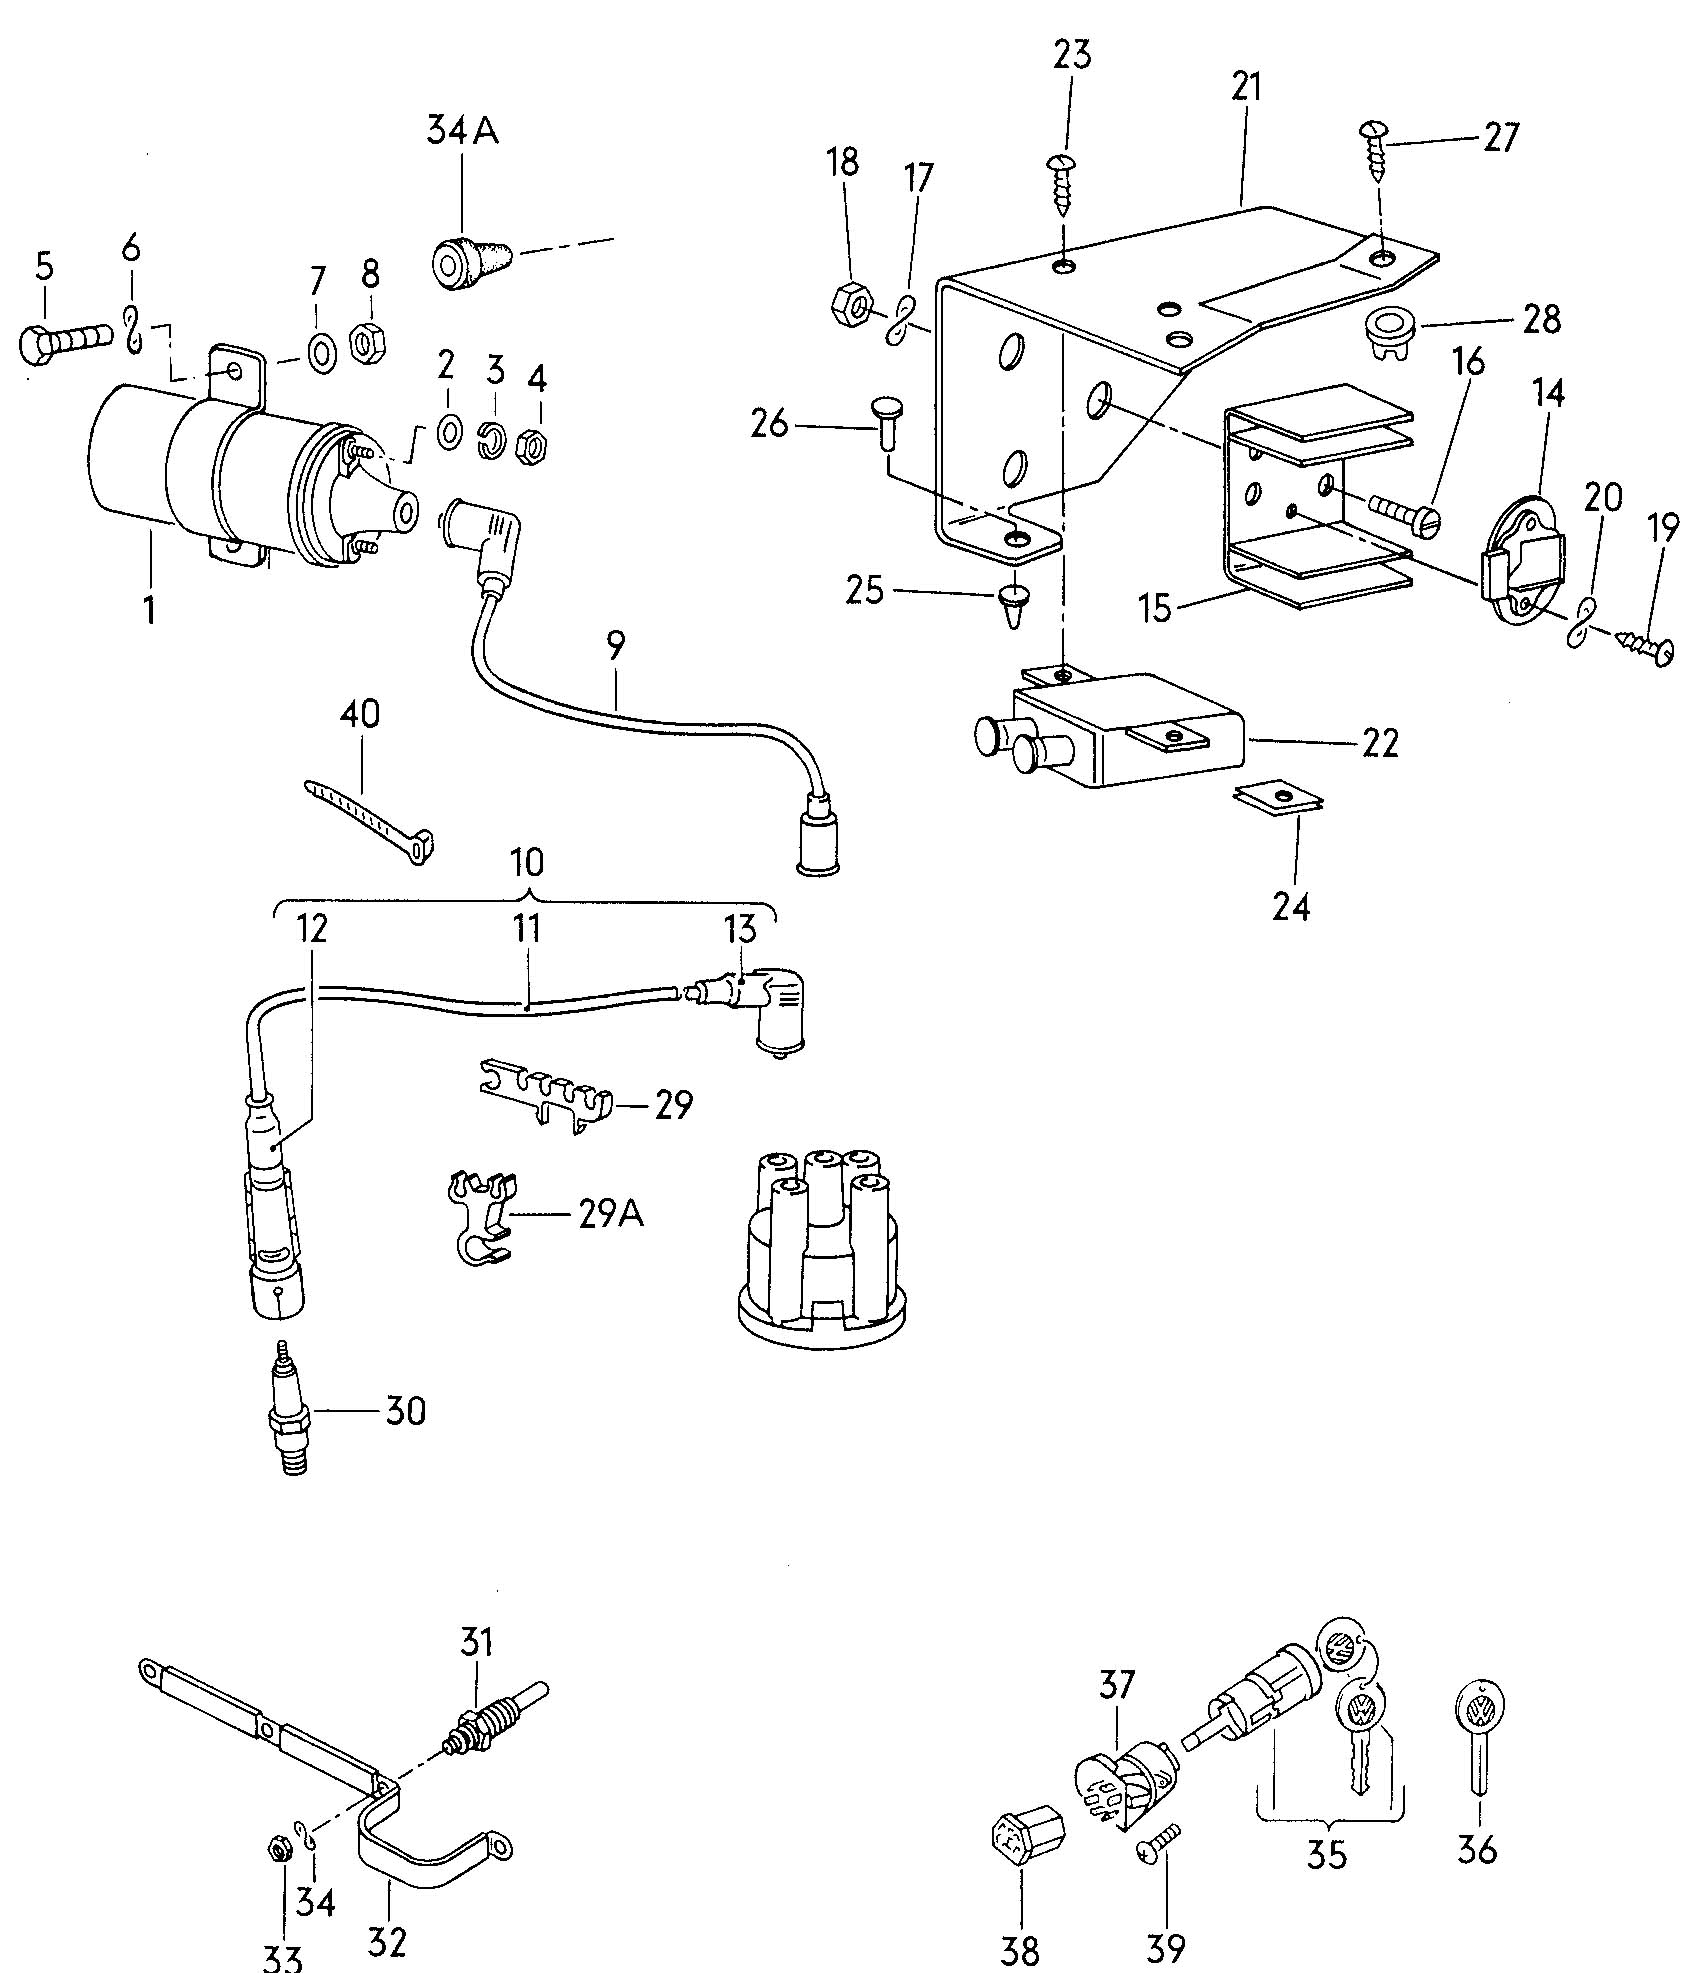 Viewtopic besides Torque Converter Clutch Fuse together with Subaru Vanagon Wiring Harness moreover 1987 Vw Vanagon Engine Diagram in addition Wiring Harness Vw Eos. on 1984 vw vanagon starter wiring diagram